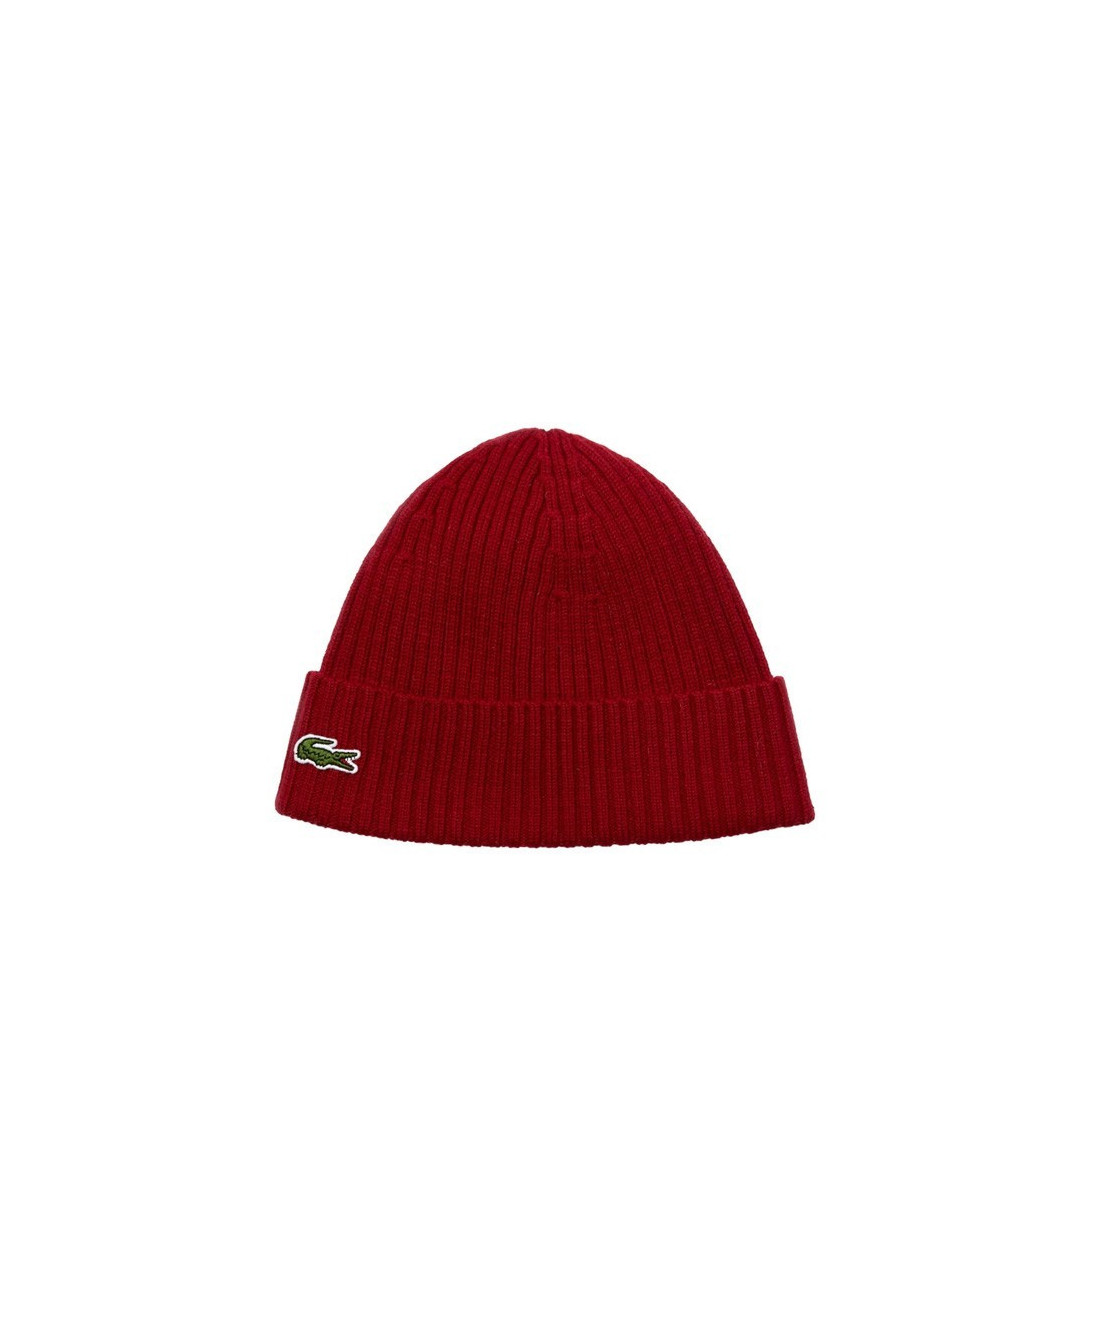 Bonnet Lacoste RB4162 476 Bordeaux